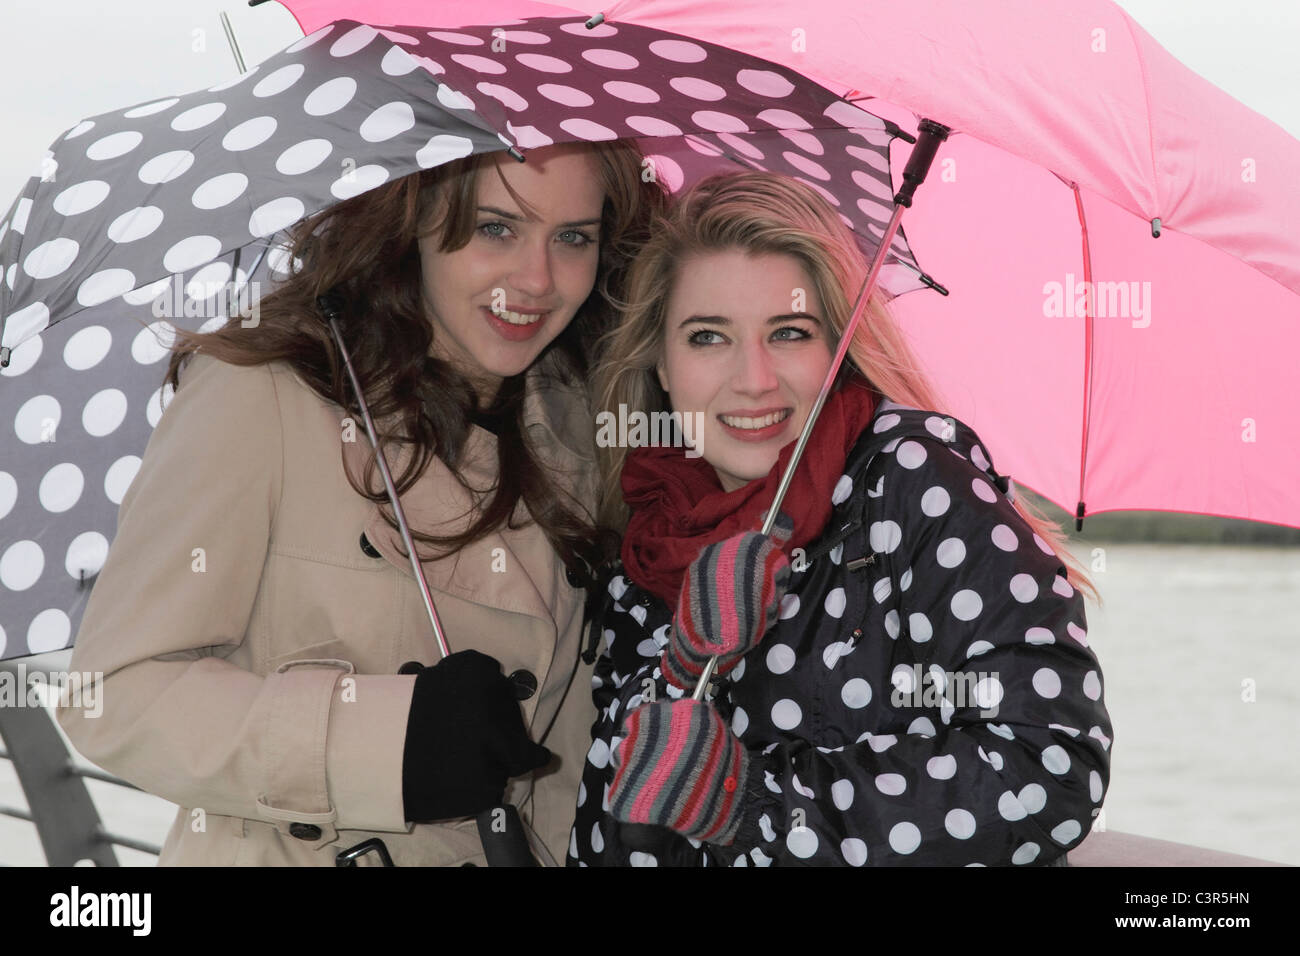 2 young women with umbrellas - Stock Image